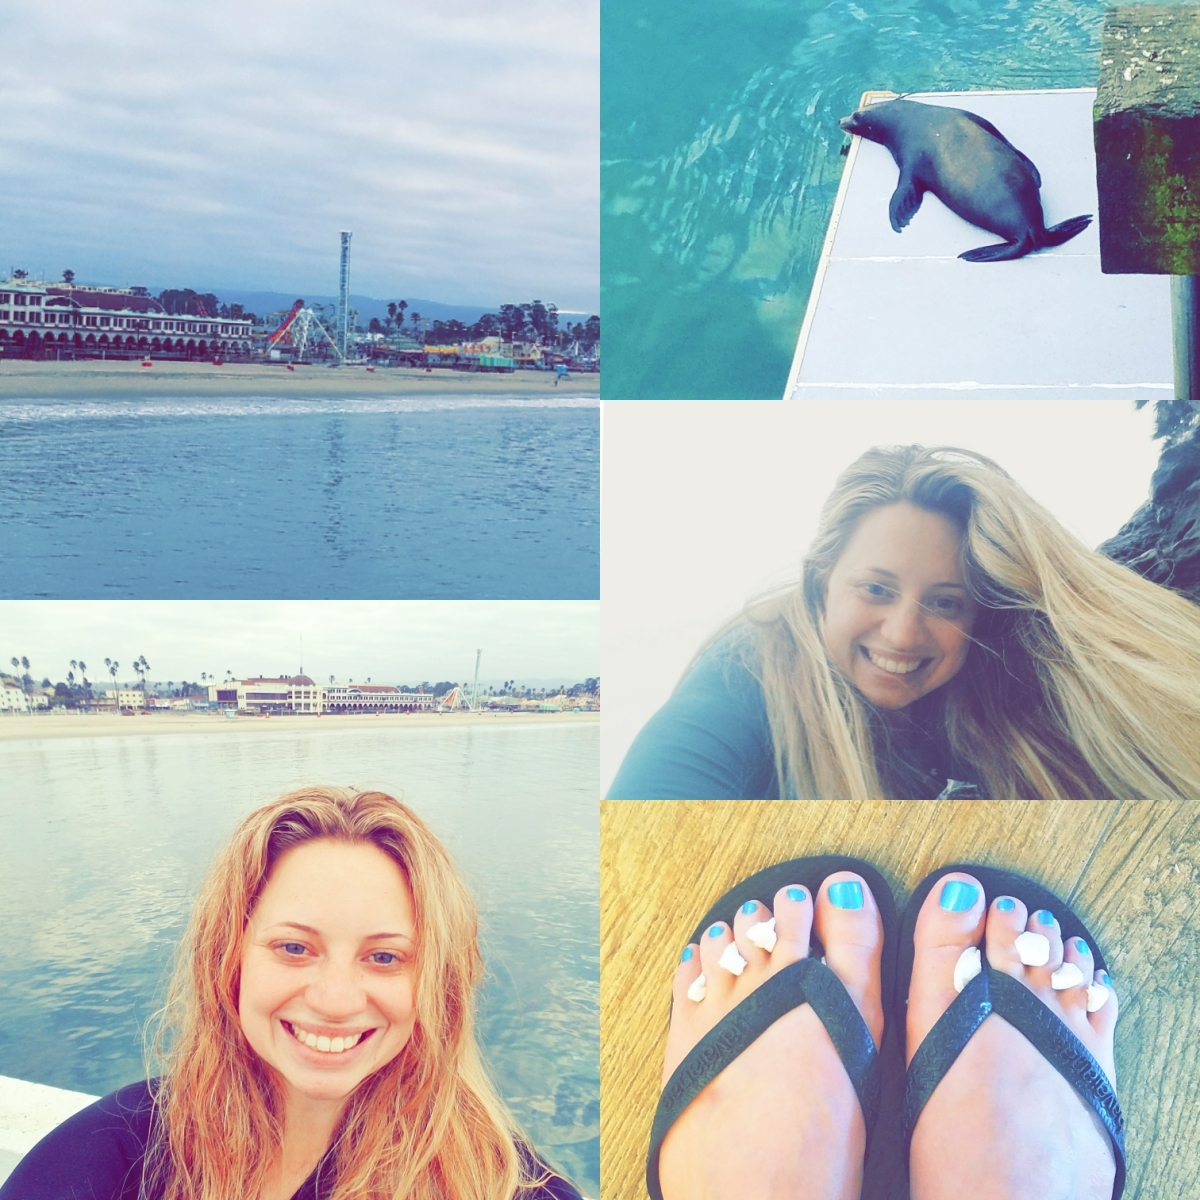 3 Surf Sessions, 2 Yoga Practices, and 1 Short Distance Run…and a Pedicure